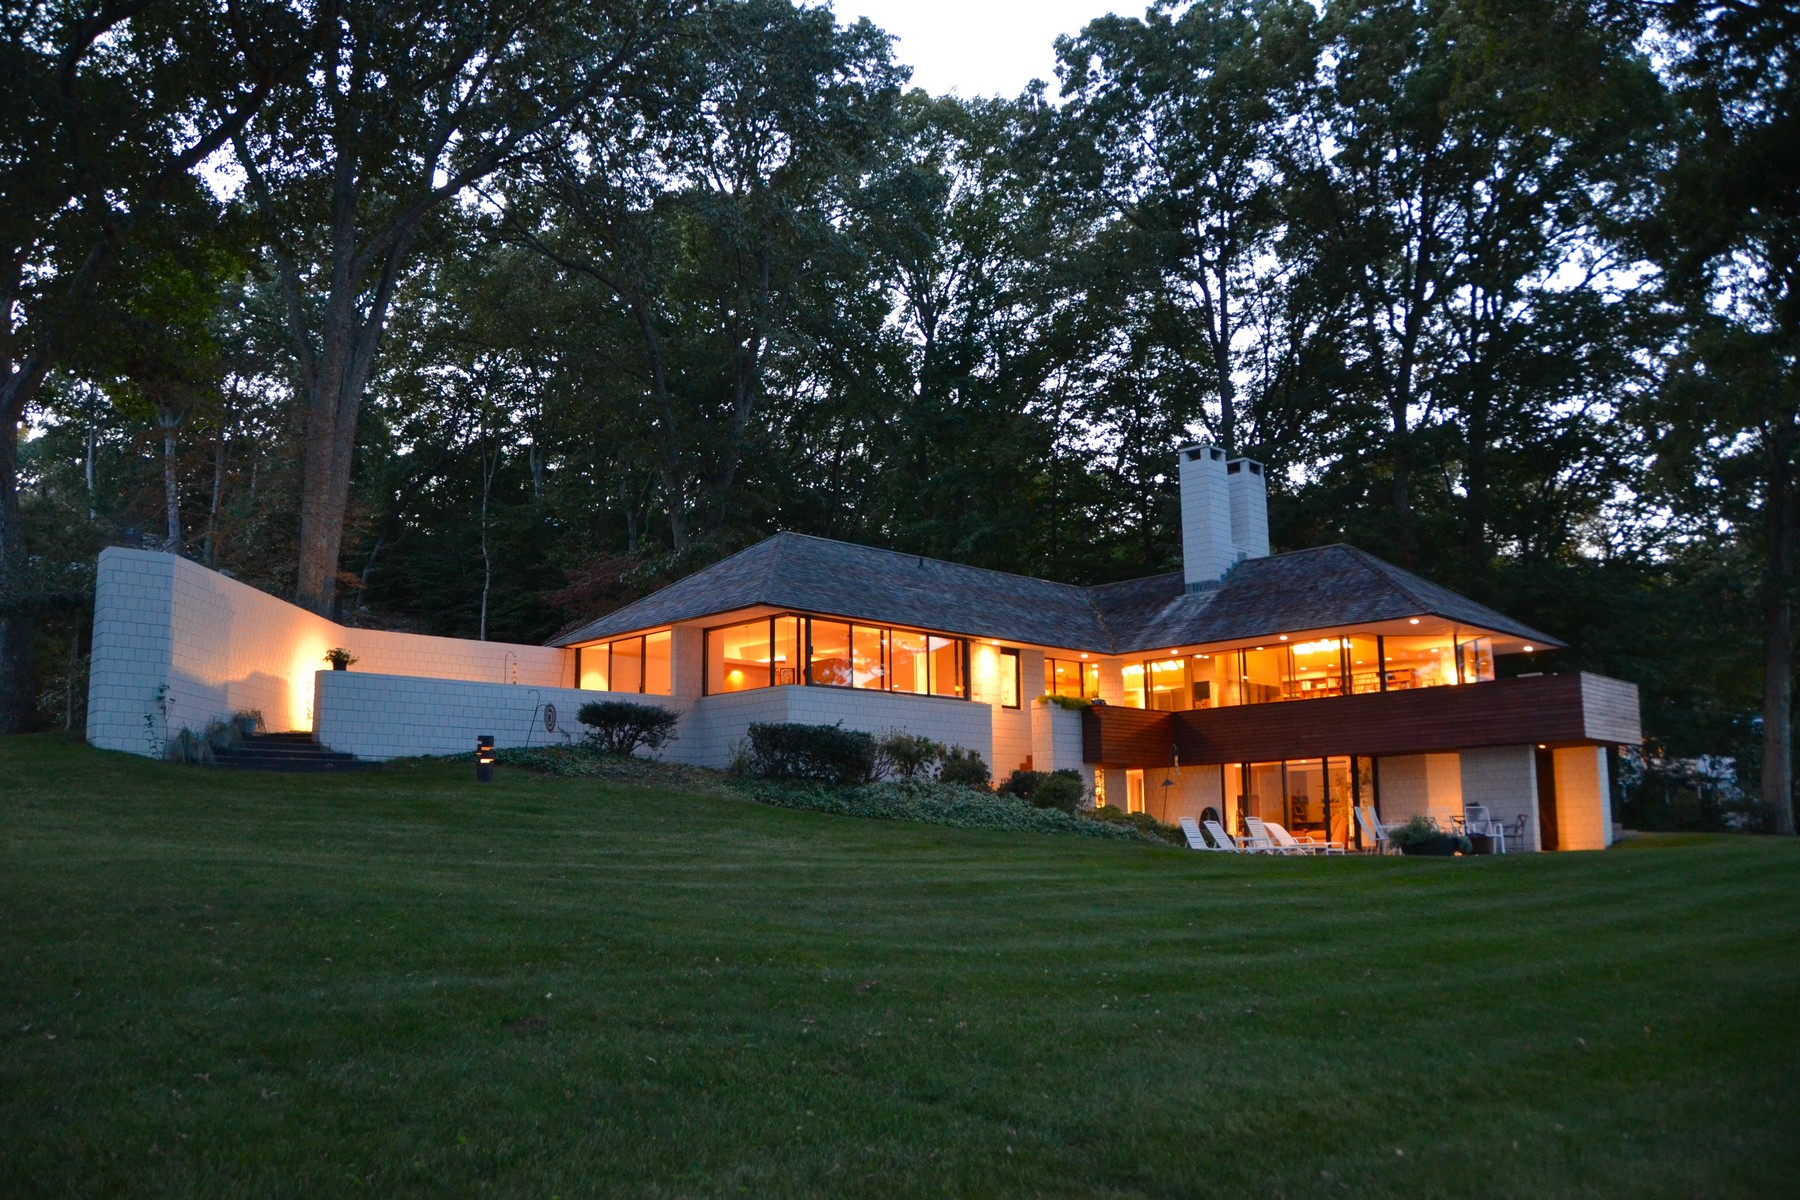 独户住宅 为 销售 在 Mid Century Modern Masterpiece on Ct River 42 Crosstrees Hill 埃塞克斯, 康涅狄格州 06426 美国